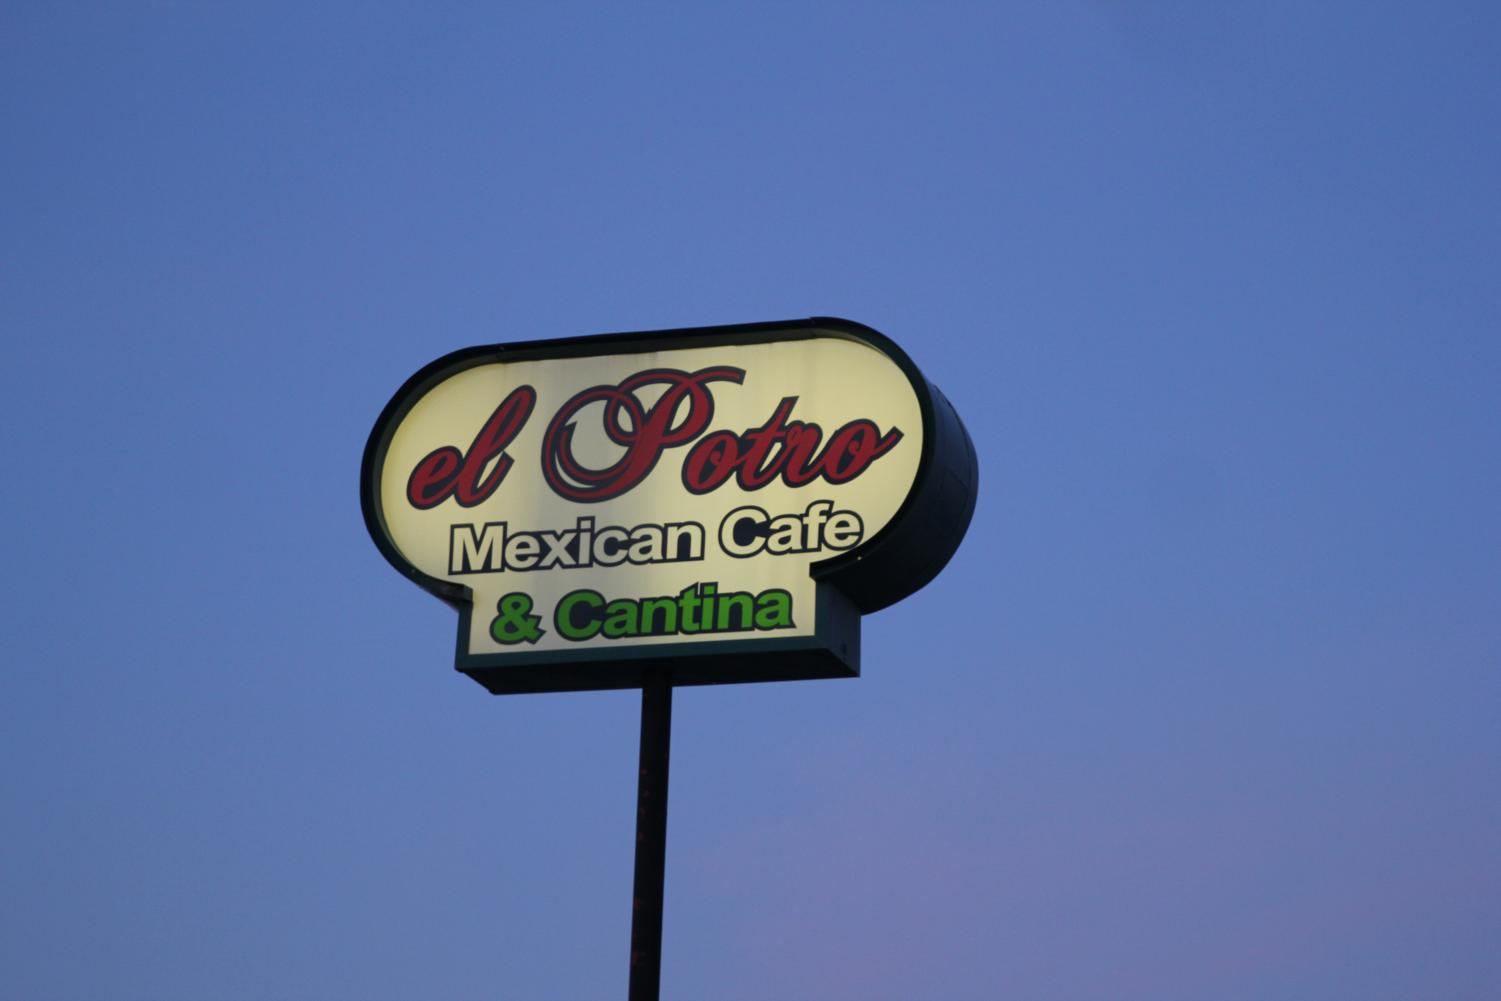 JagWire staffers visited El Potro on Friday, Apr 12. It is located at 13035 Canaan Center Dr, Bonner Springs, KS.